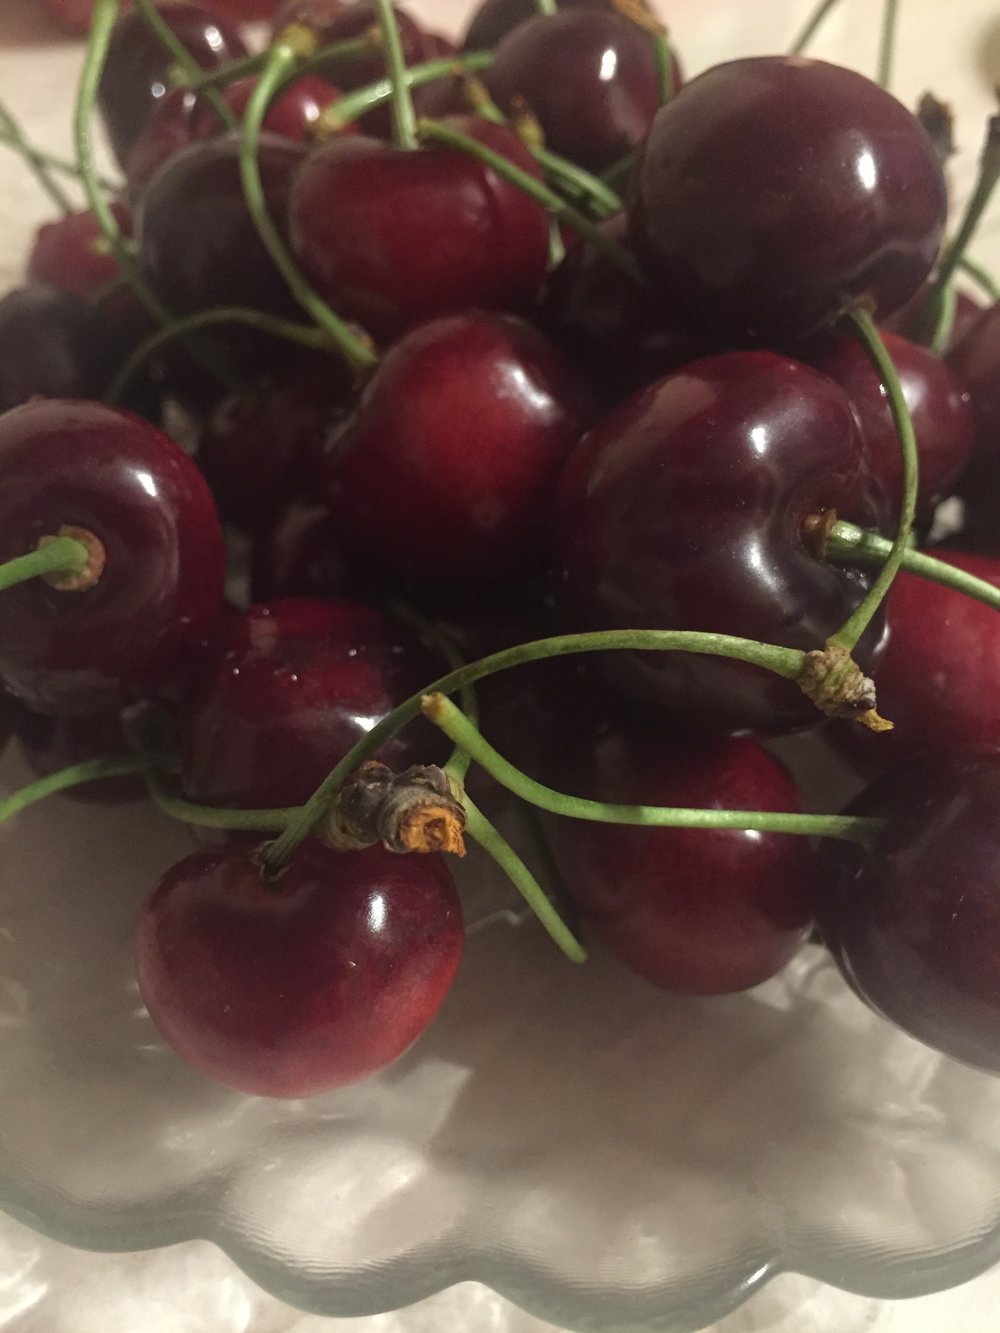 Weekly Travel Roulette: Armenian Cherries